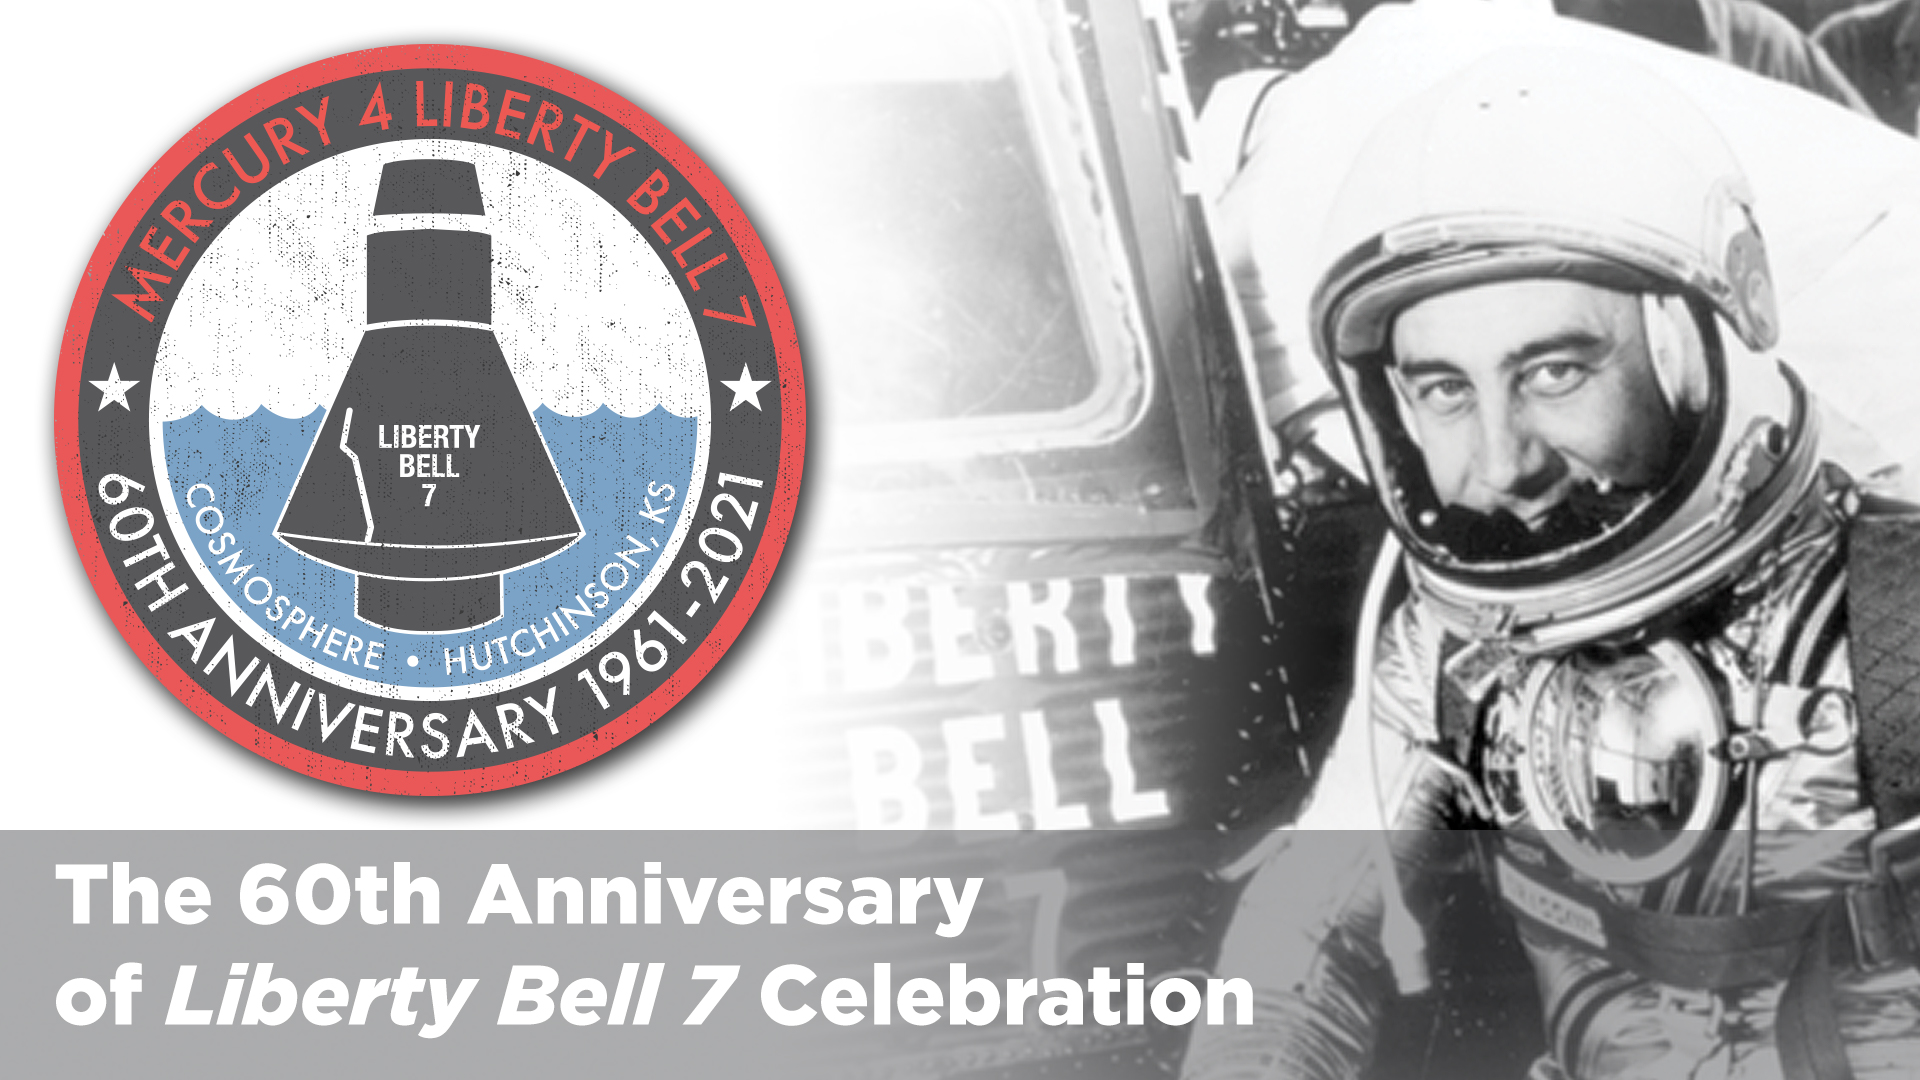 Cosmosphere Celebrates 60th Anniversary of Liberty Bell 7